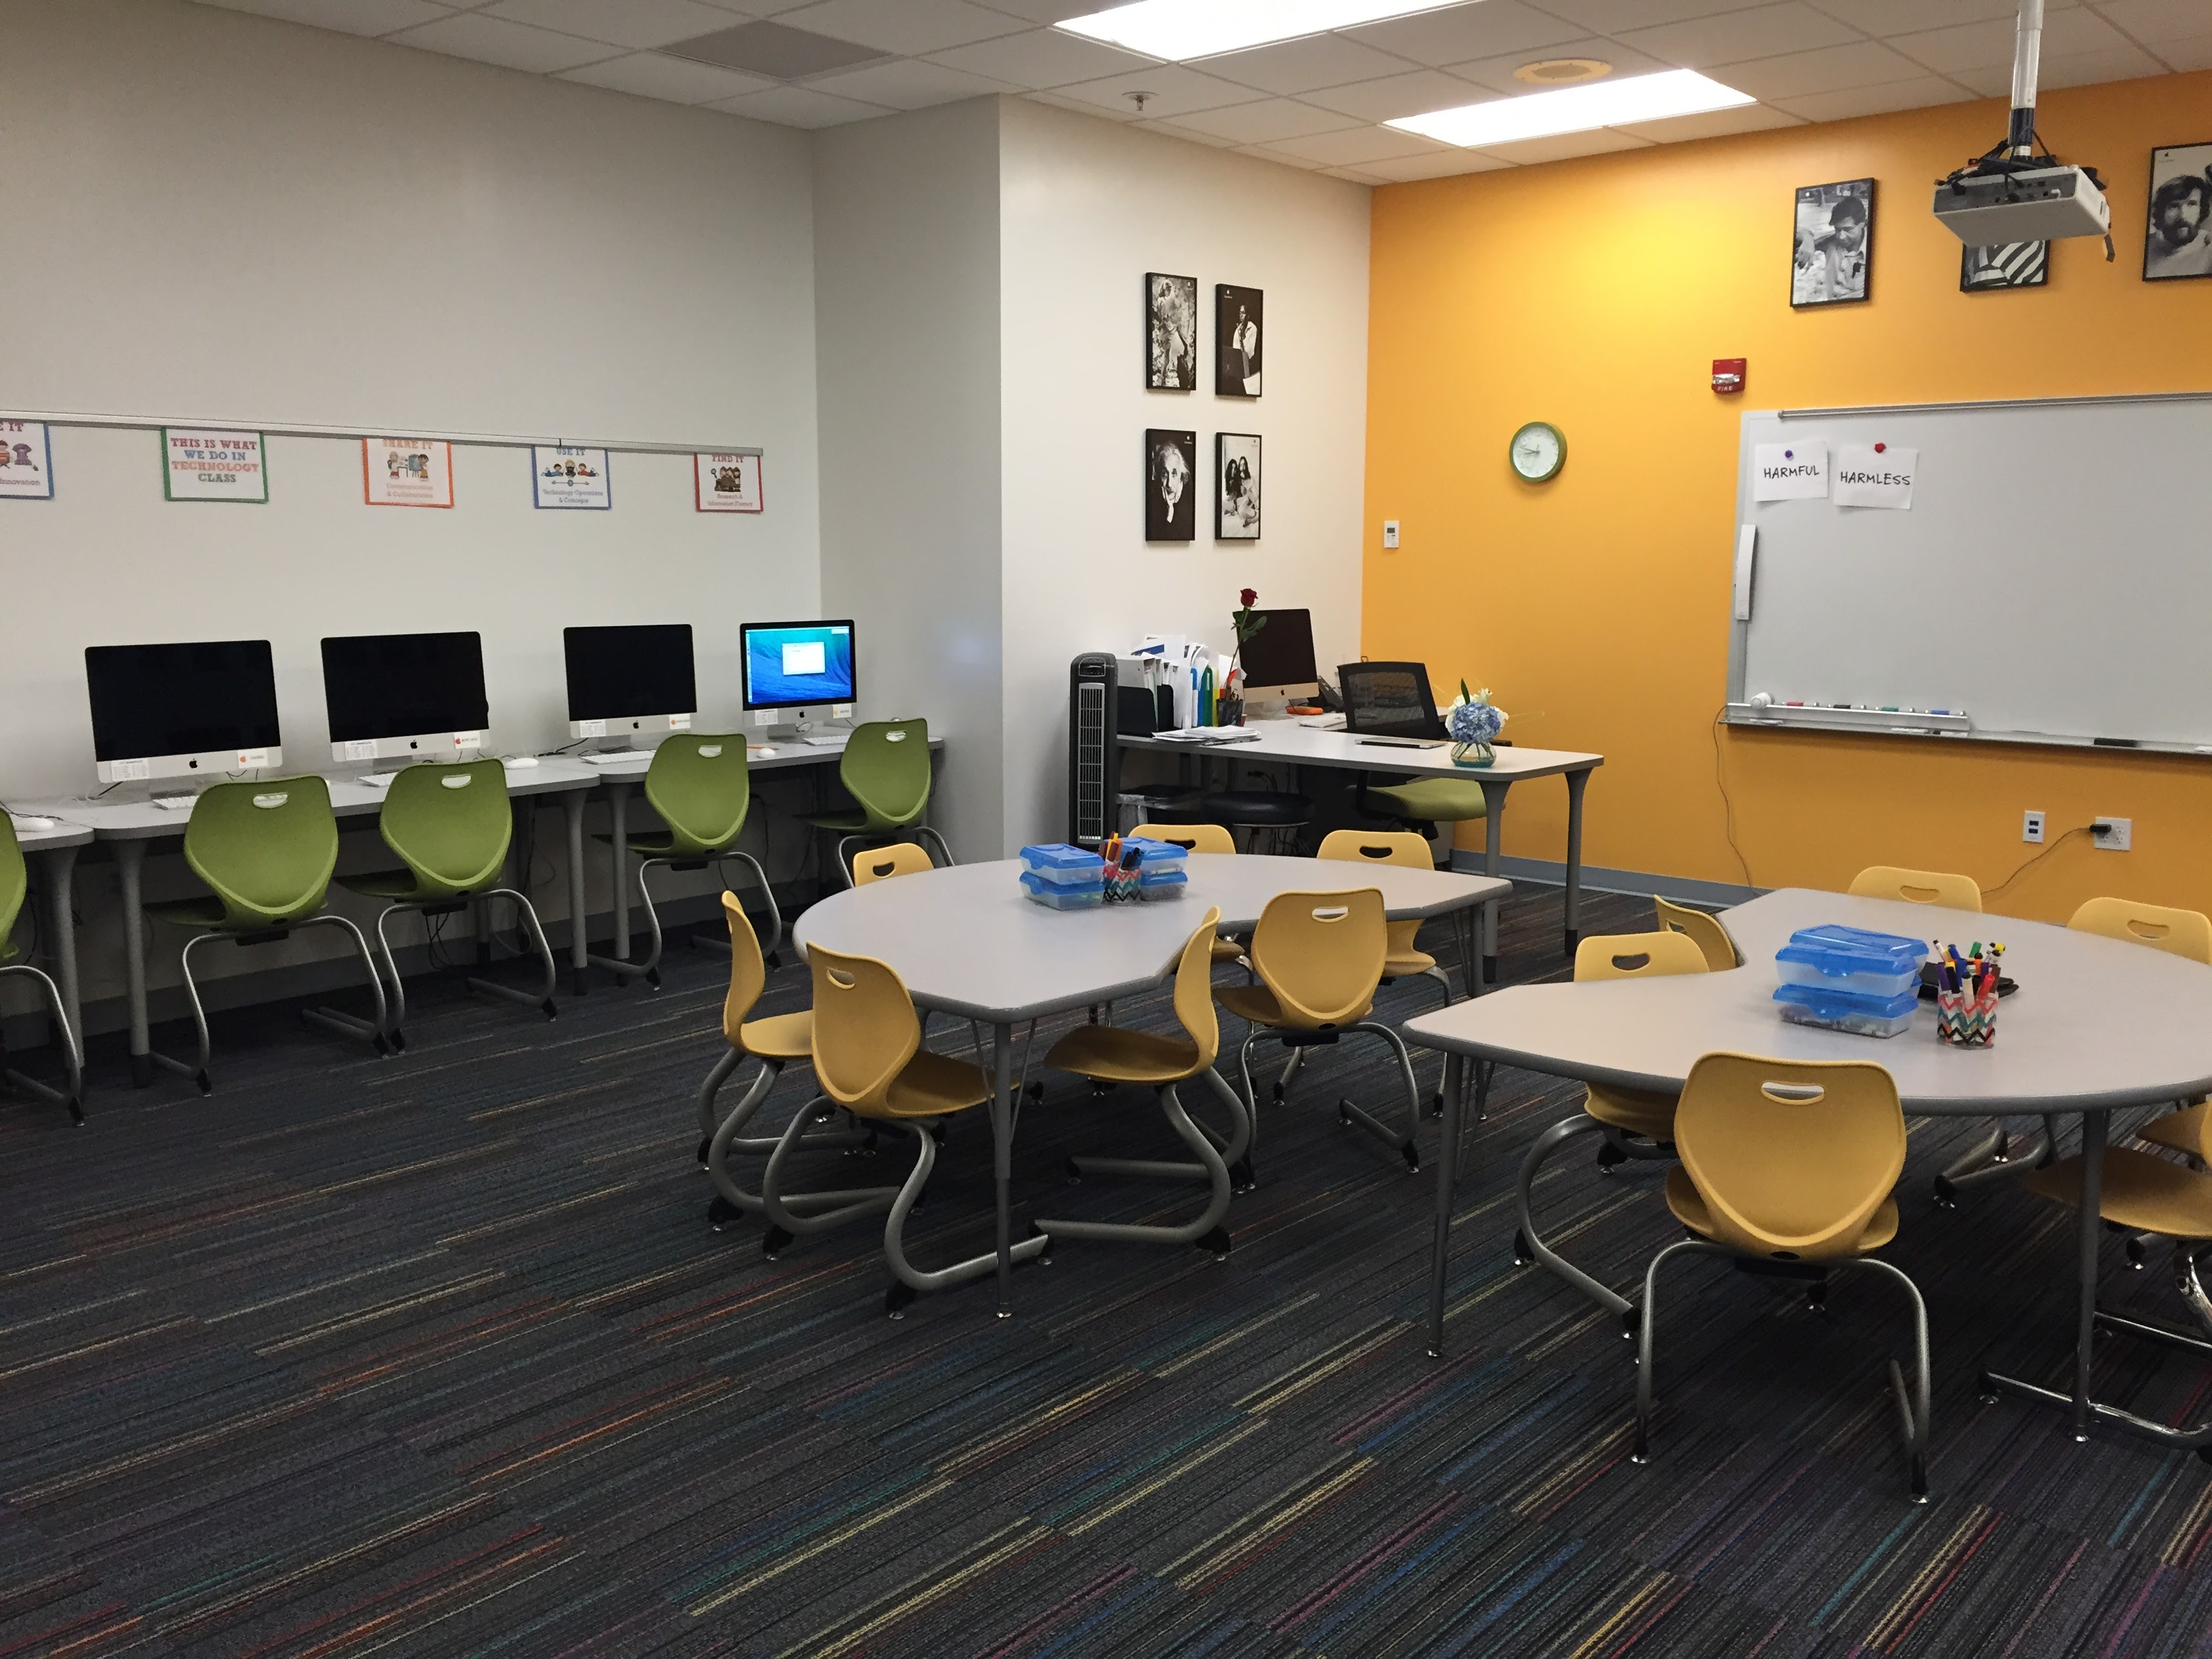 Room Design Classroom ~ Ways to upgrade your classroom design cult of pedagogy